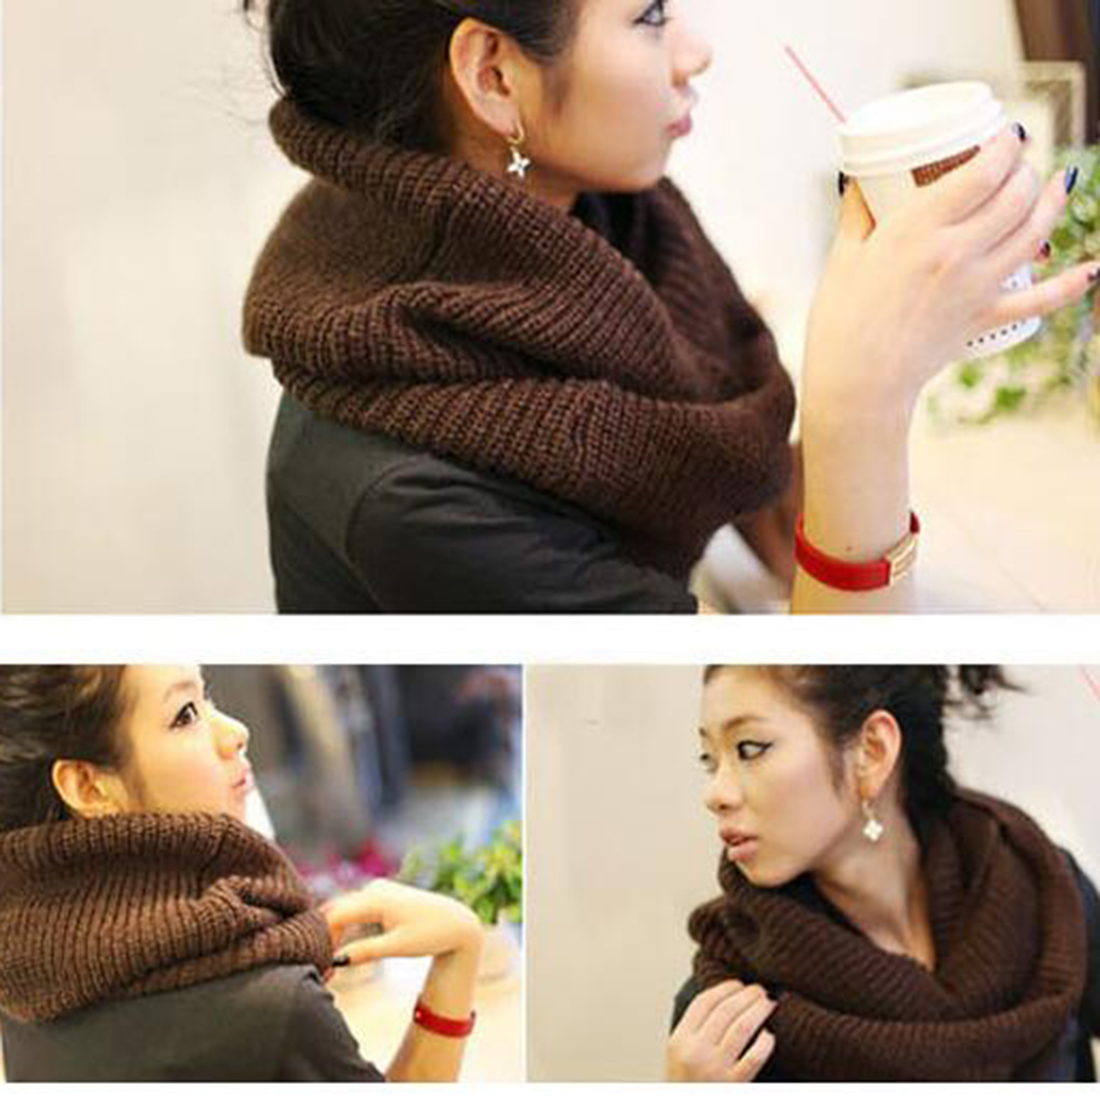 New Bob Winter Scarf Knitted Soft Wool Collar Solid Color Neck Warmer Shawl Wraps Warmer Crochet Women Scarves Female Scarves in Women 39 s Scarves from Apparel Accessories